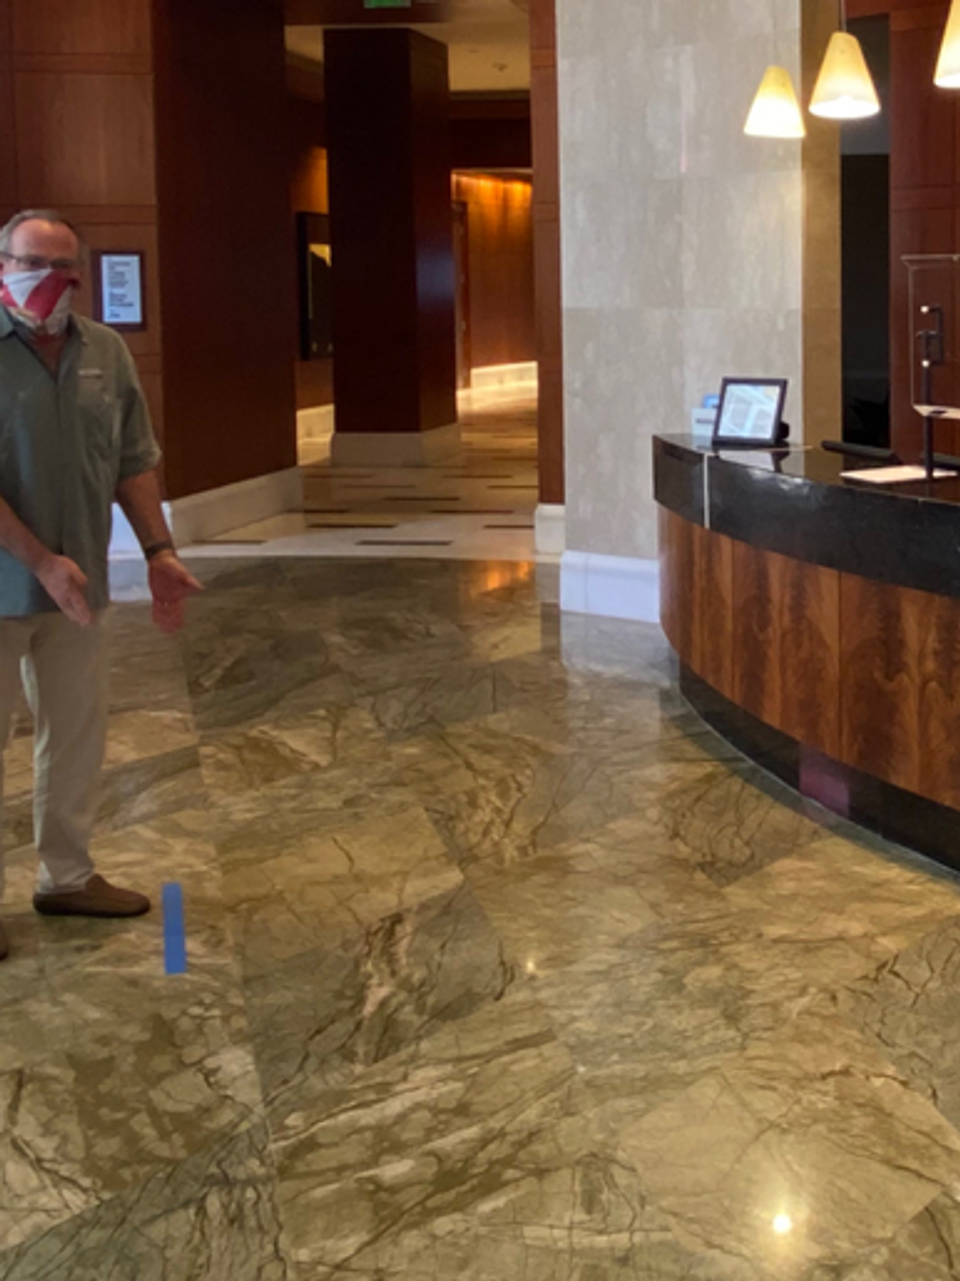 Local Hotel Adapts To New Normal During The Coronavirus Pandemic